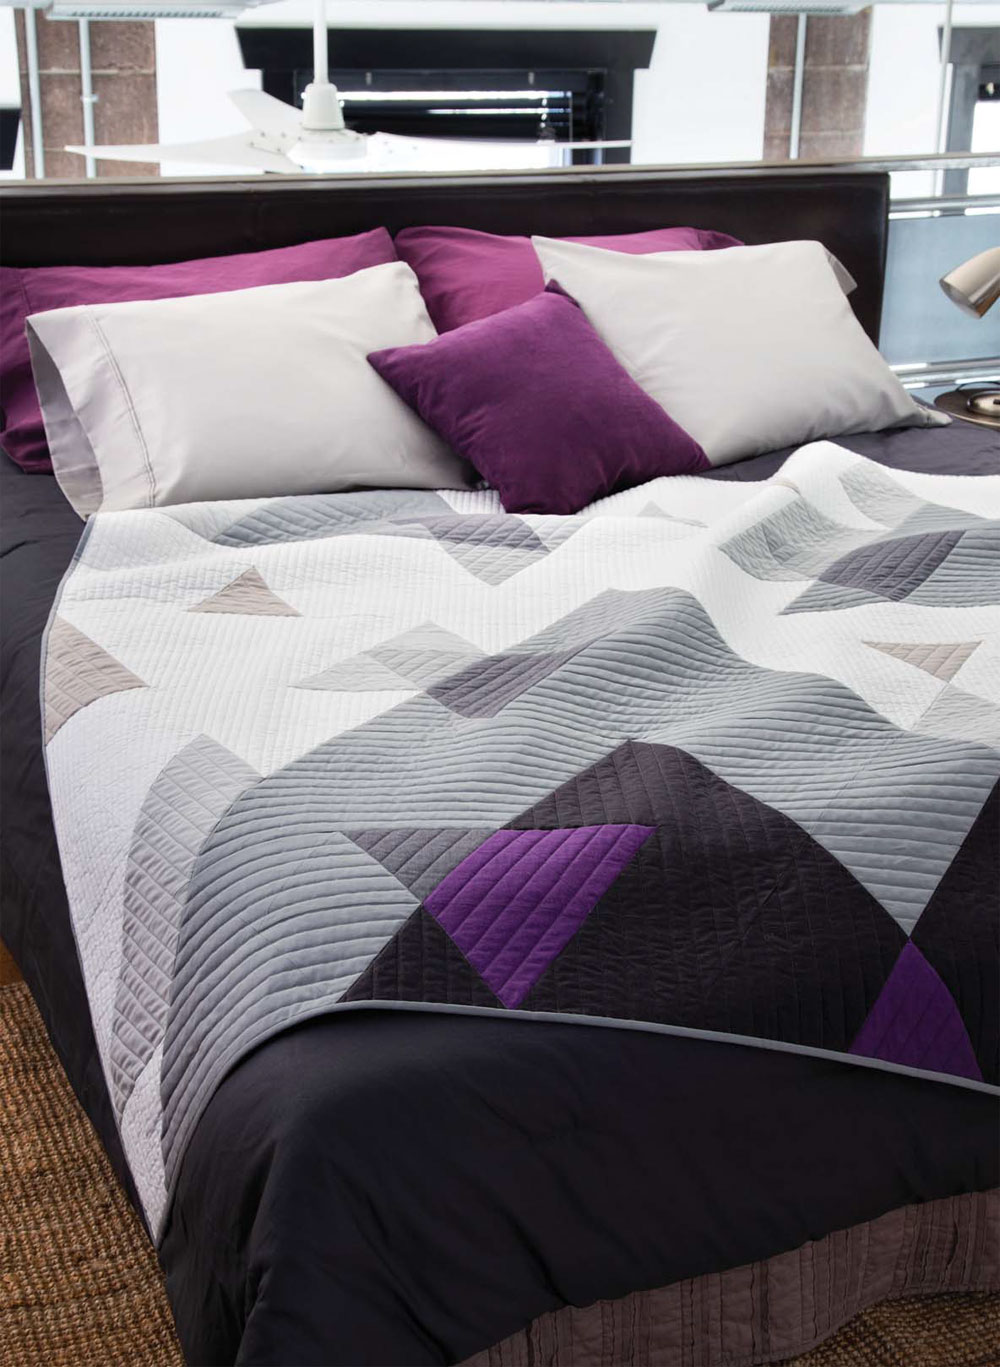 Explore transparency in Mountain Joy, the modern quilt designed by Kate Colleran